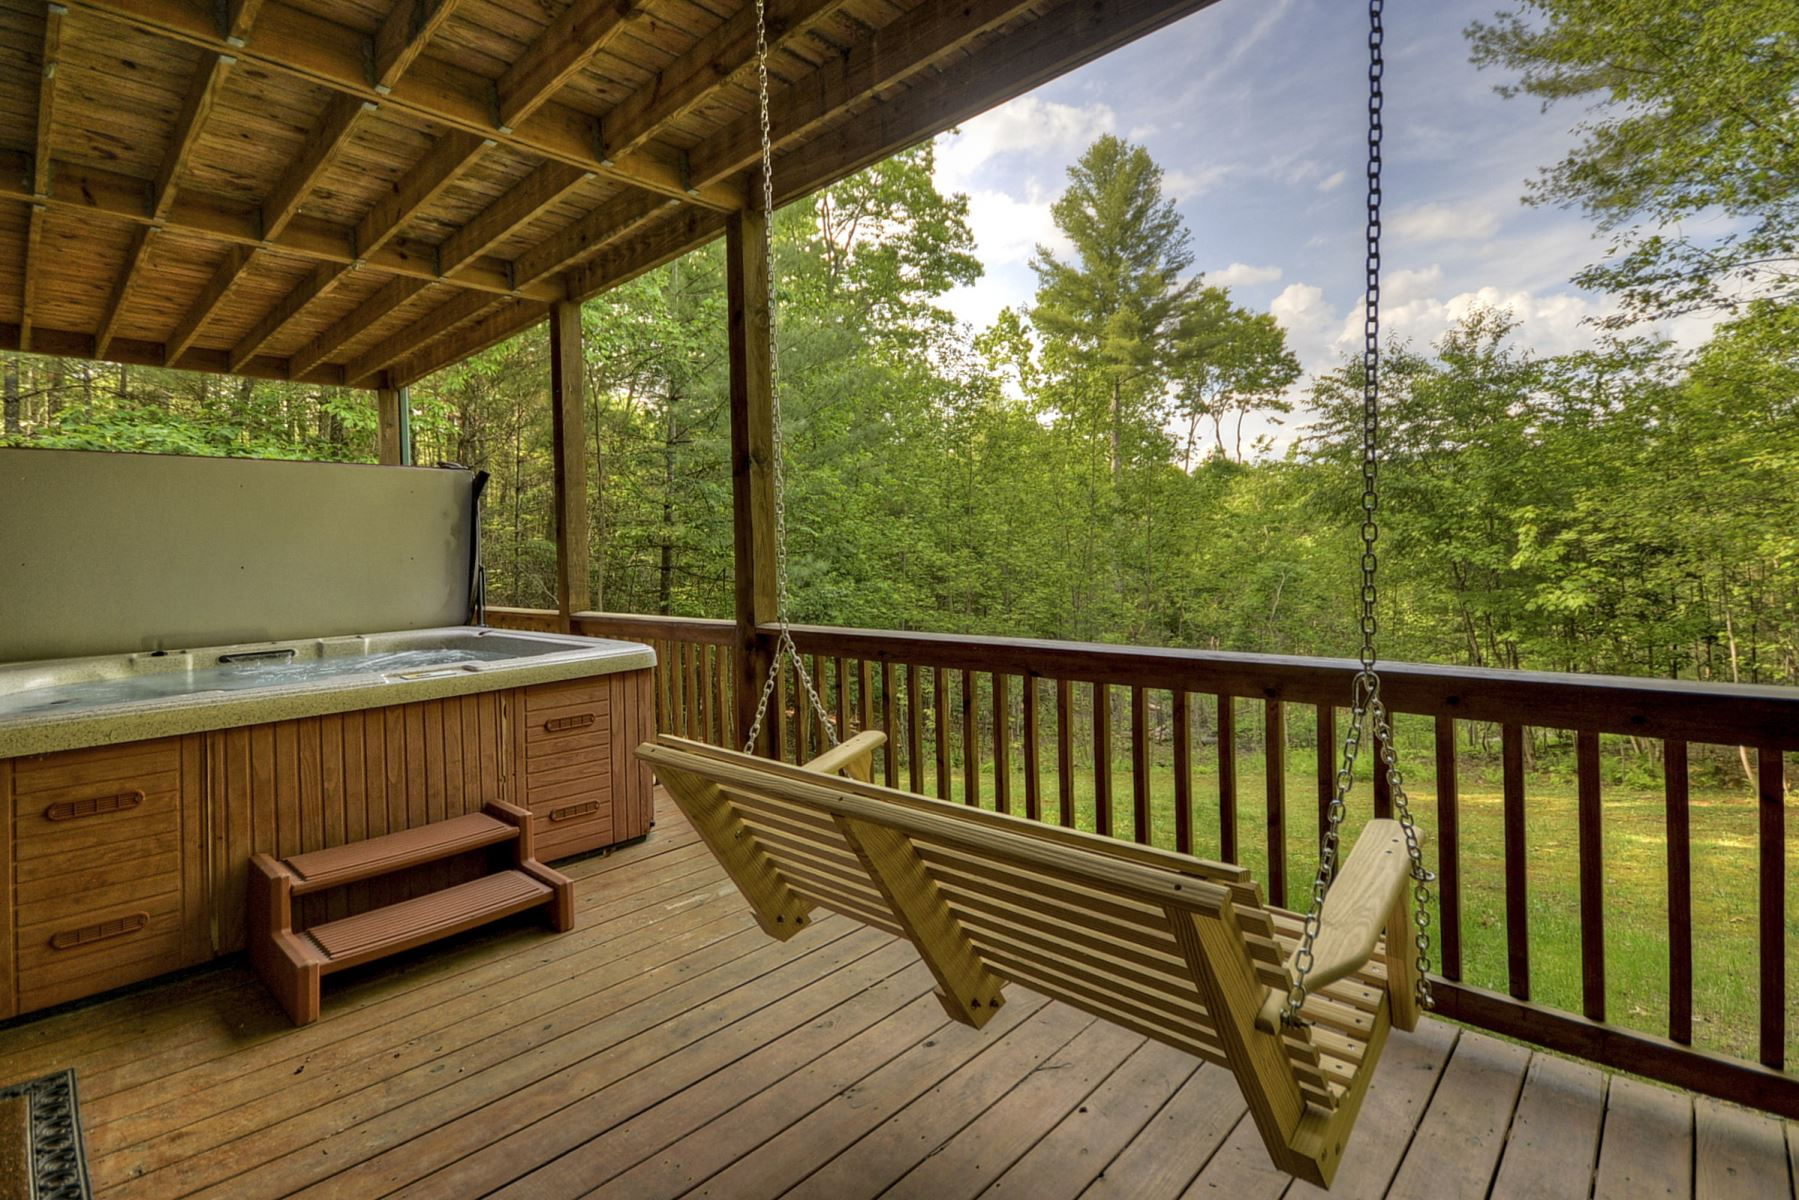 rentals city missouri campgrounds koa lodging in cabin type kansas oak grove cabins site east